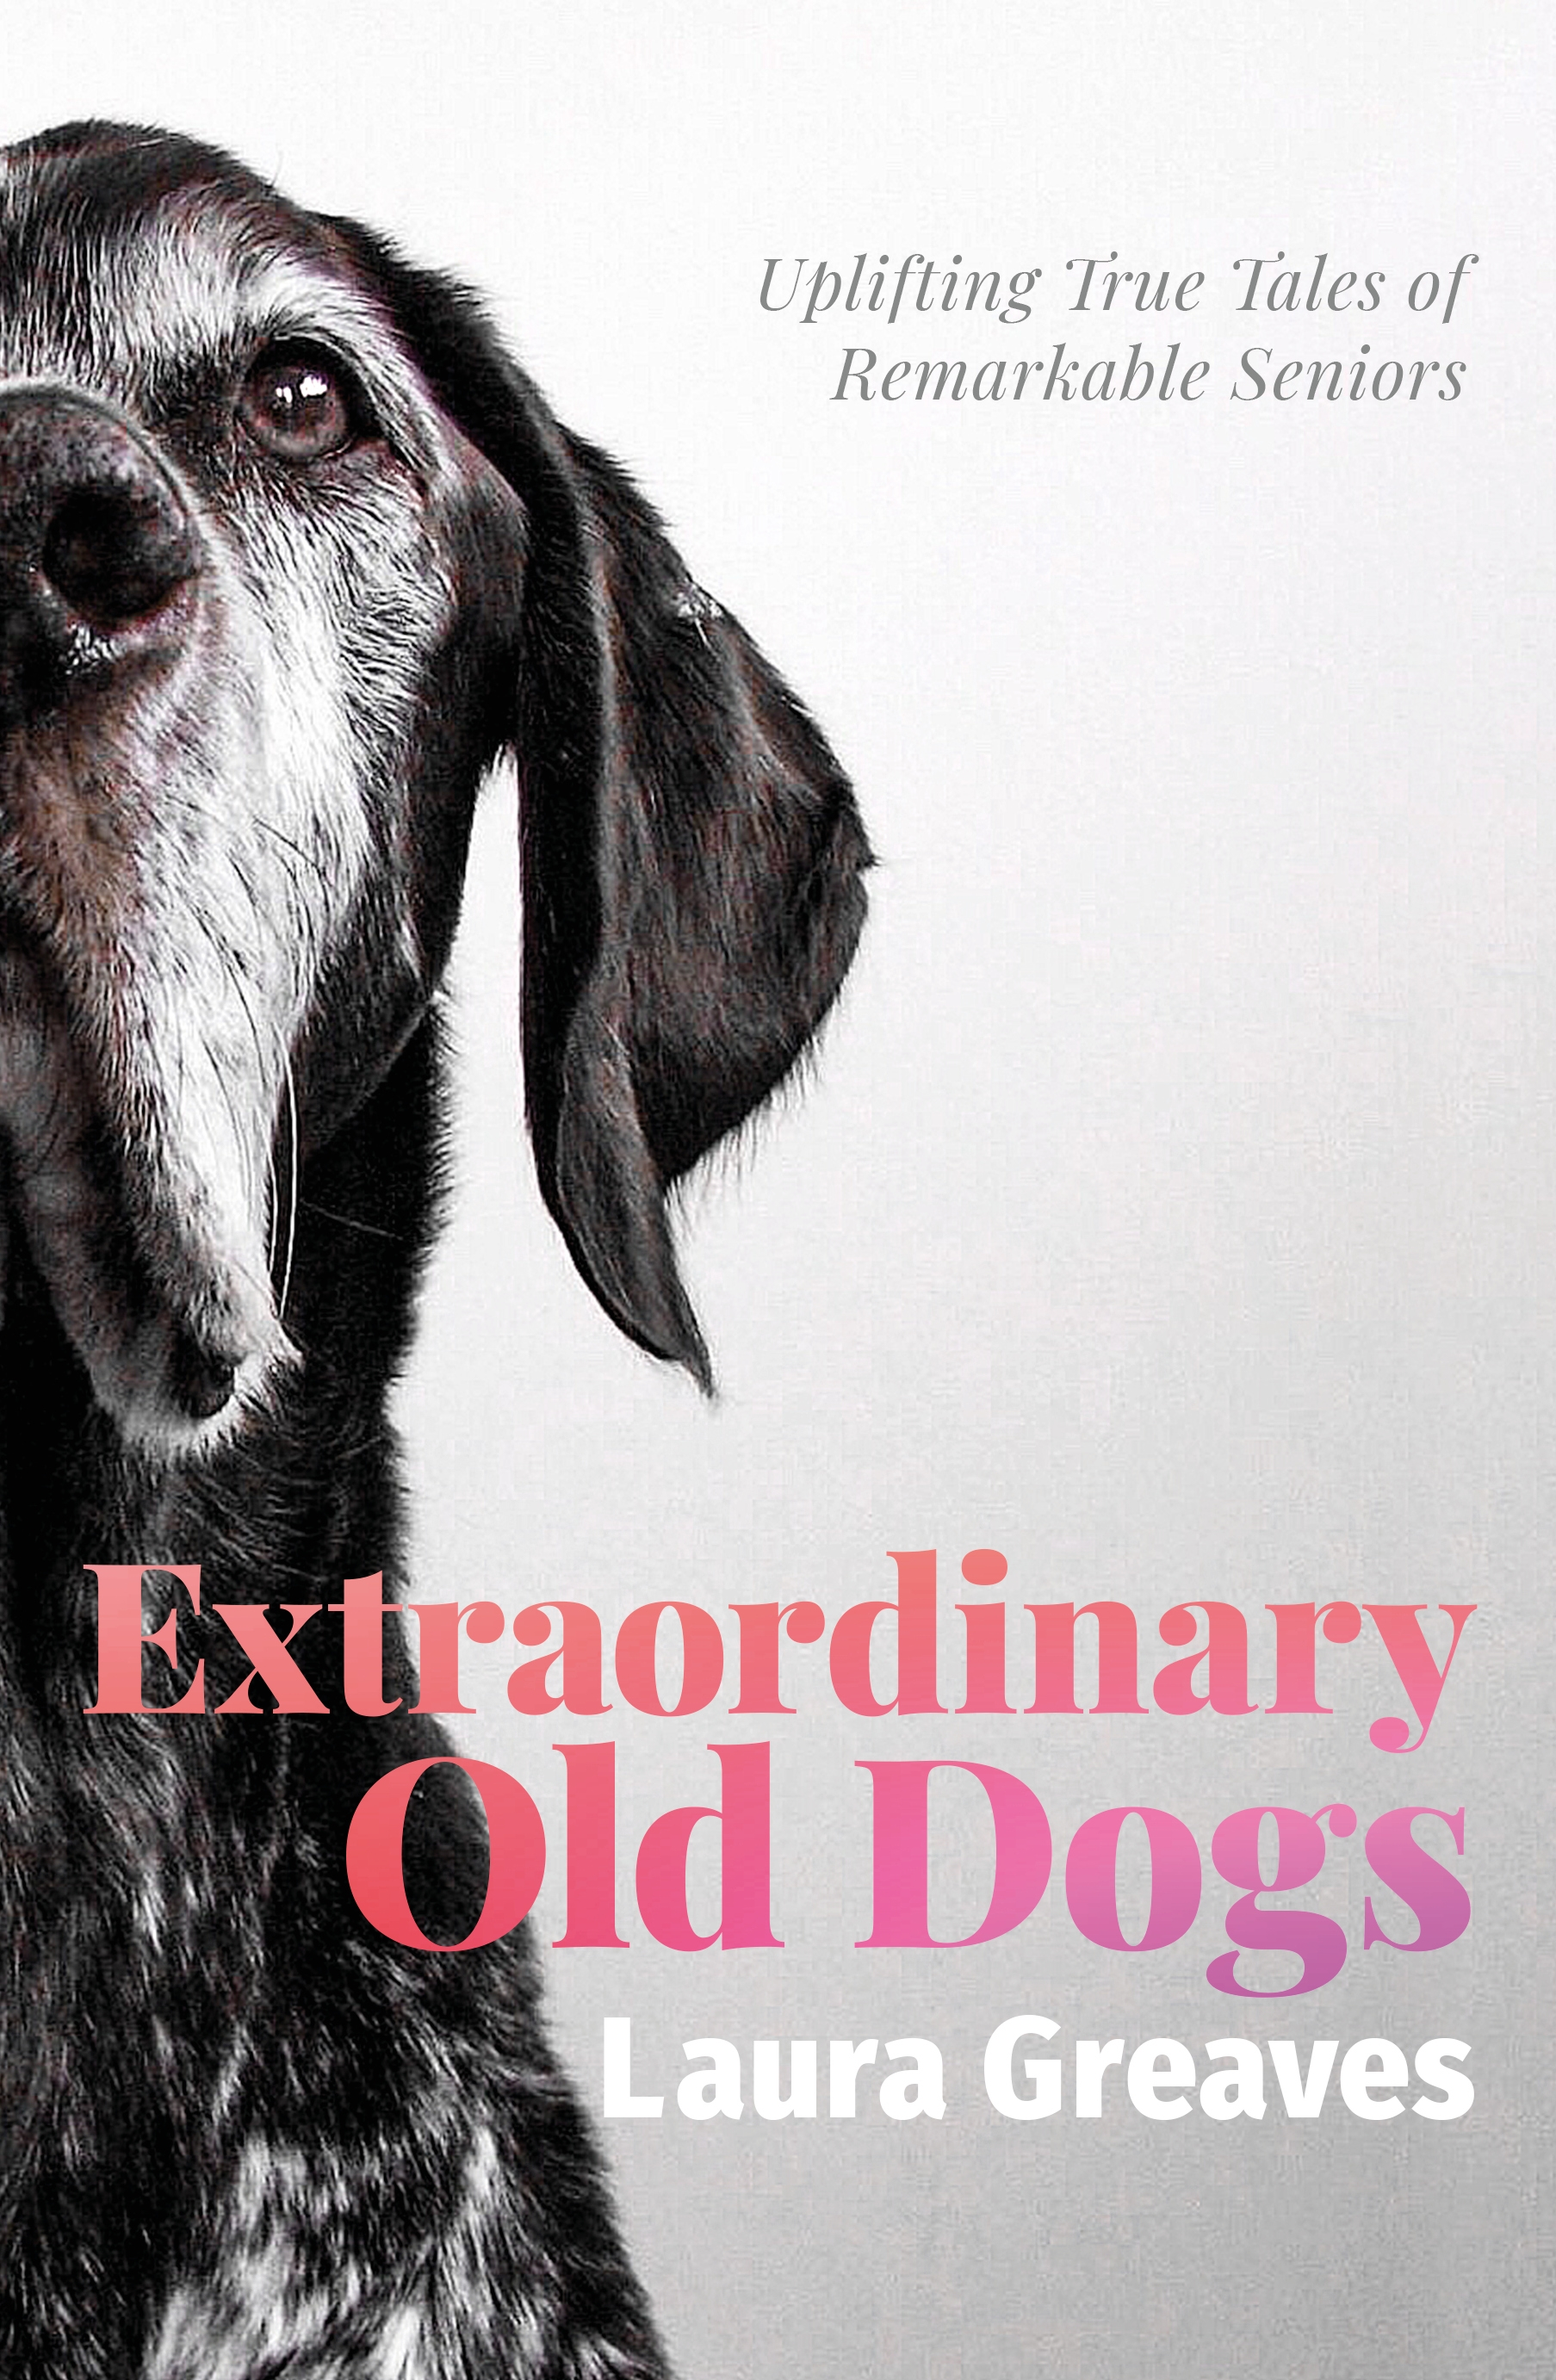 Q&A: Extraordinary Old Dogs by Laura Greaves